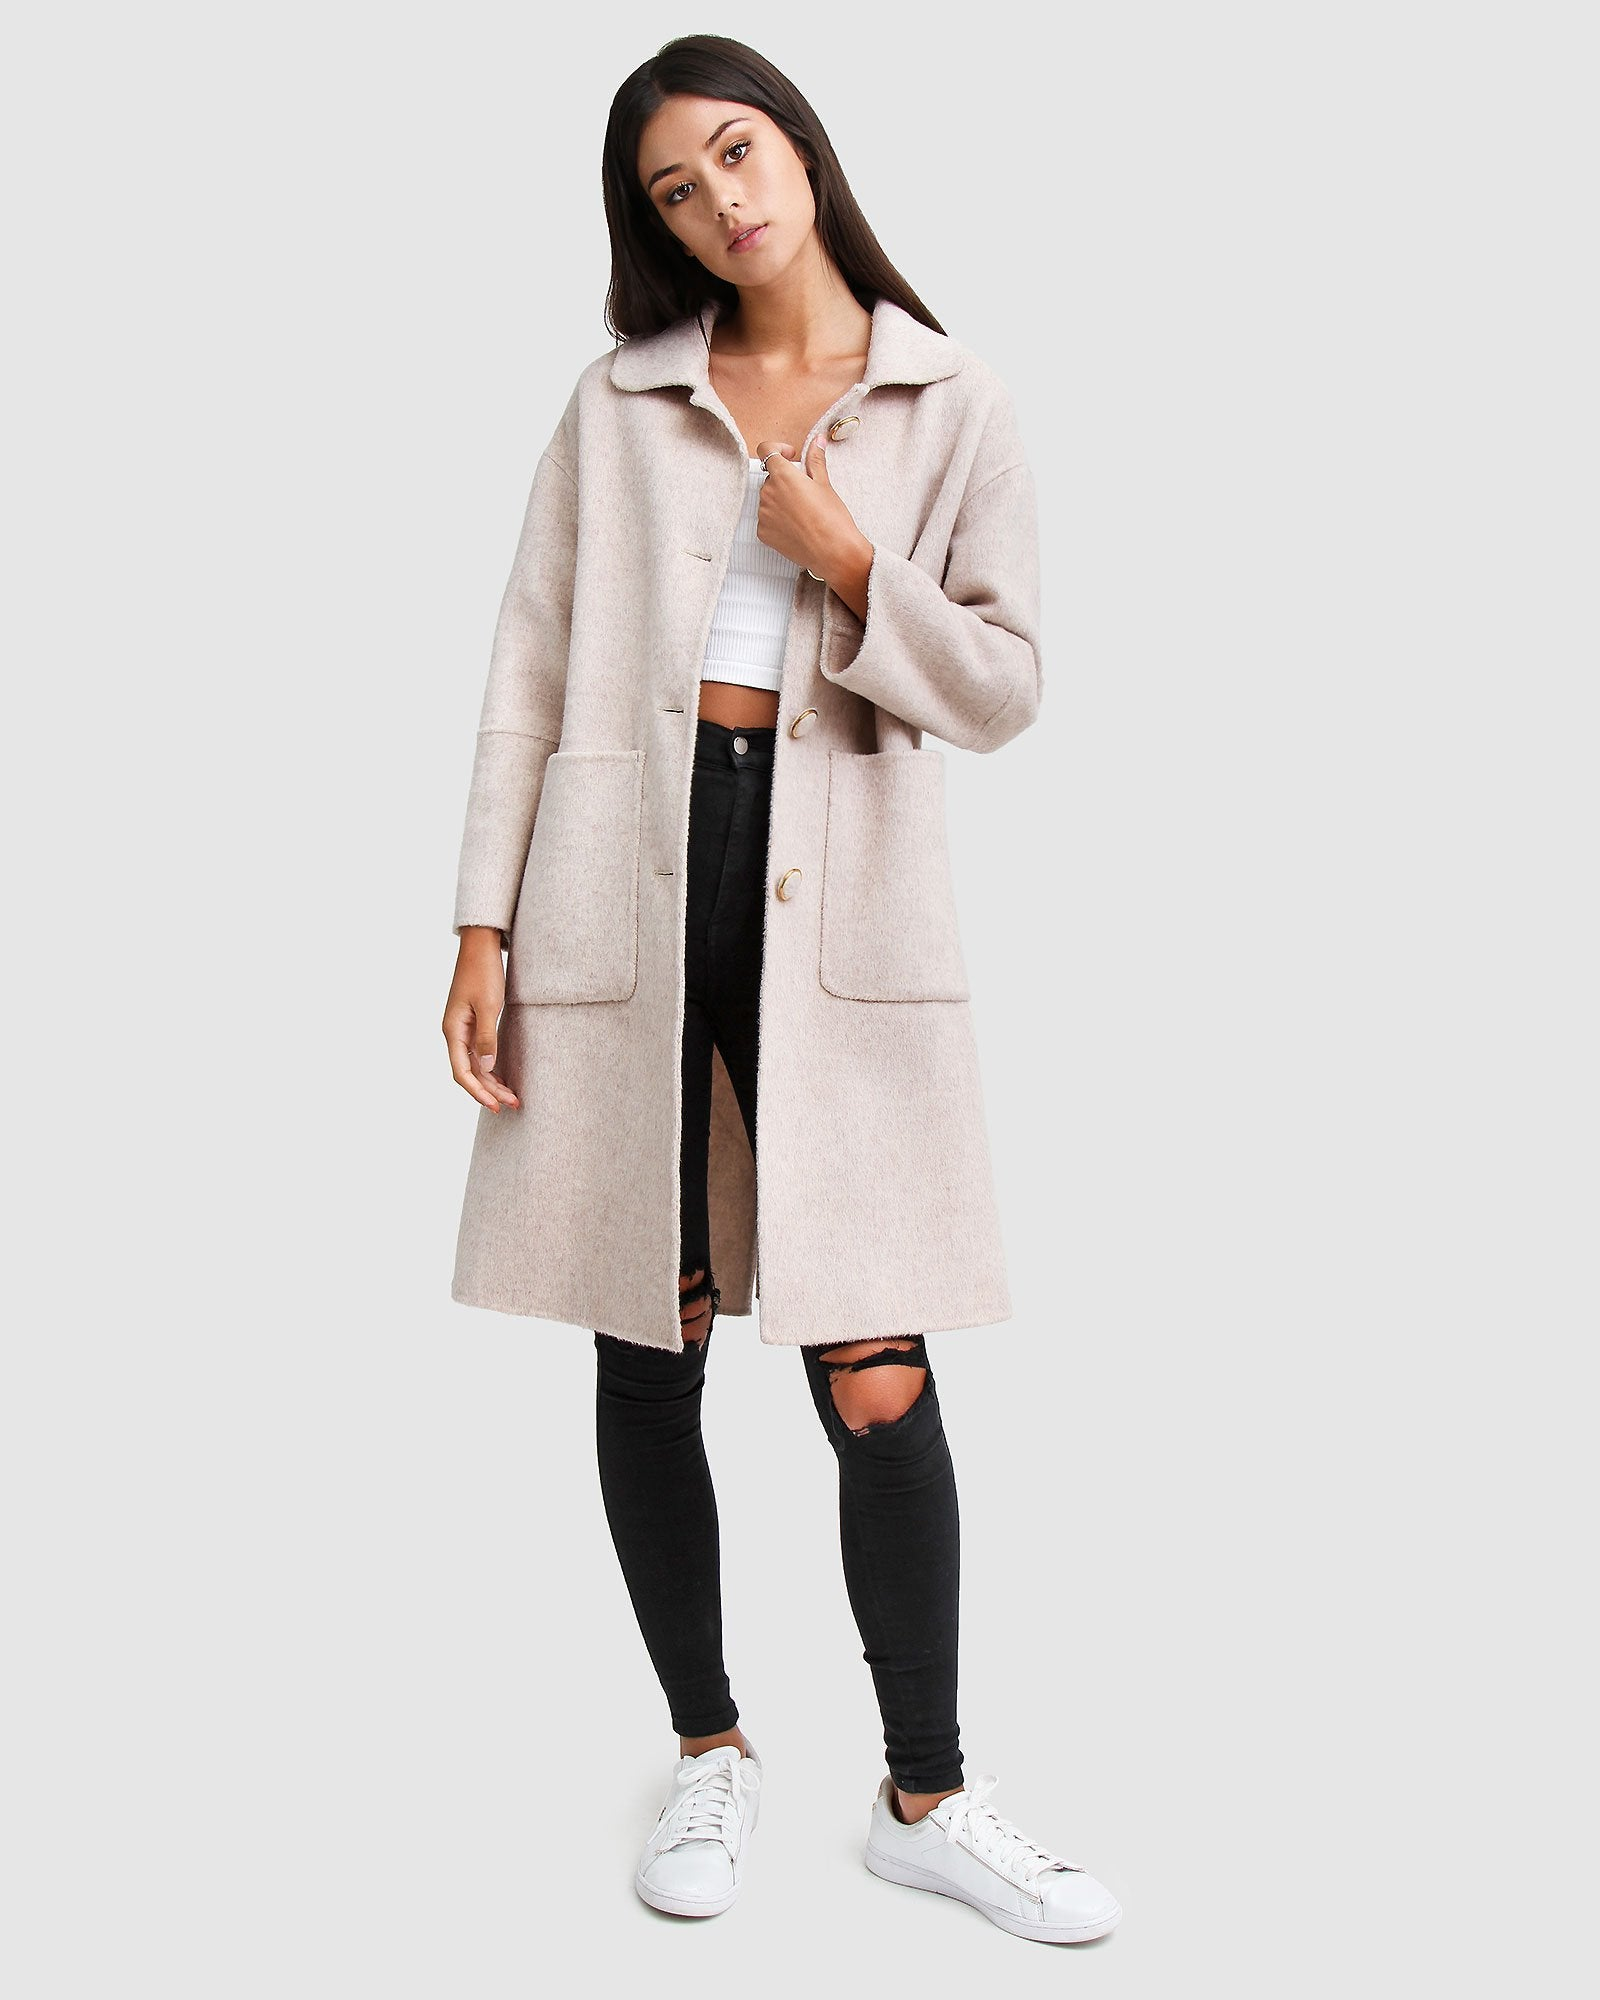 So Chic Wool Blend Coat - Beige